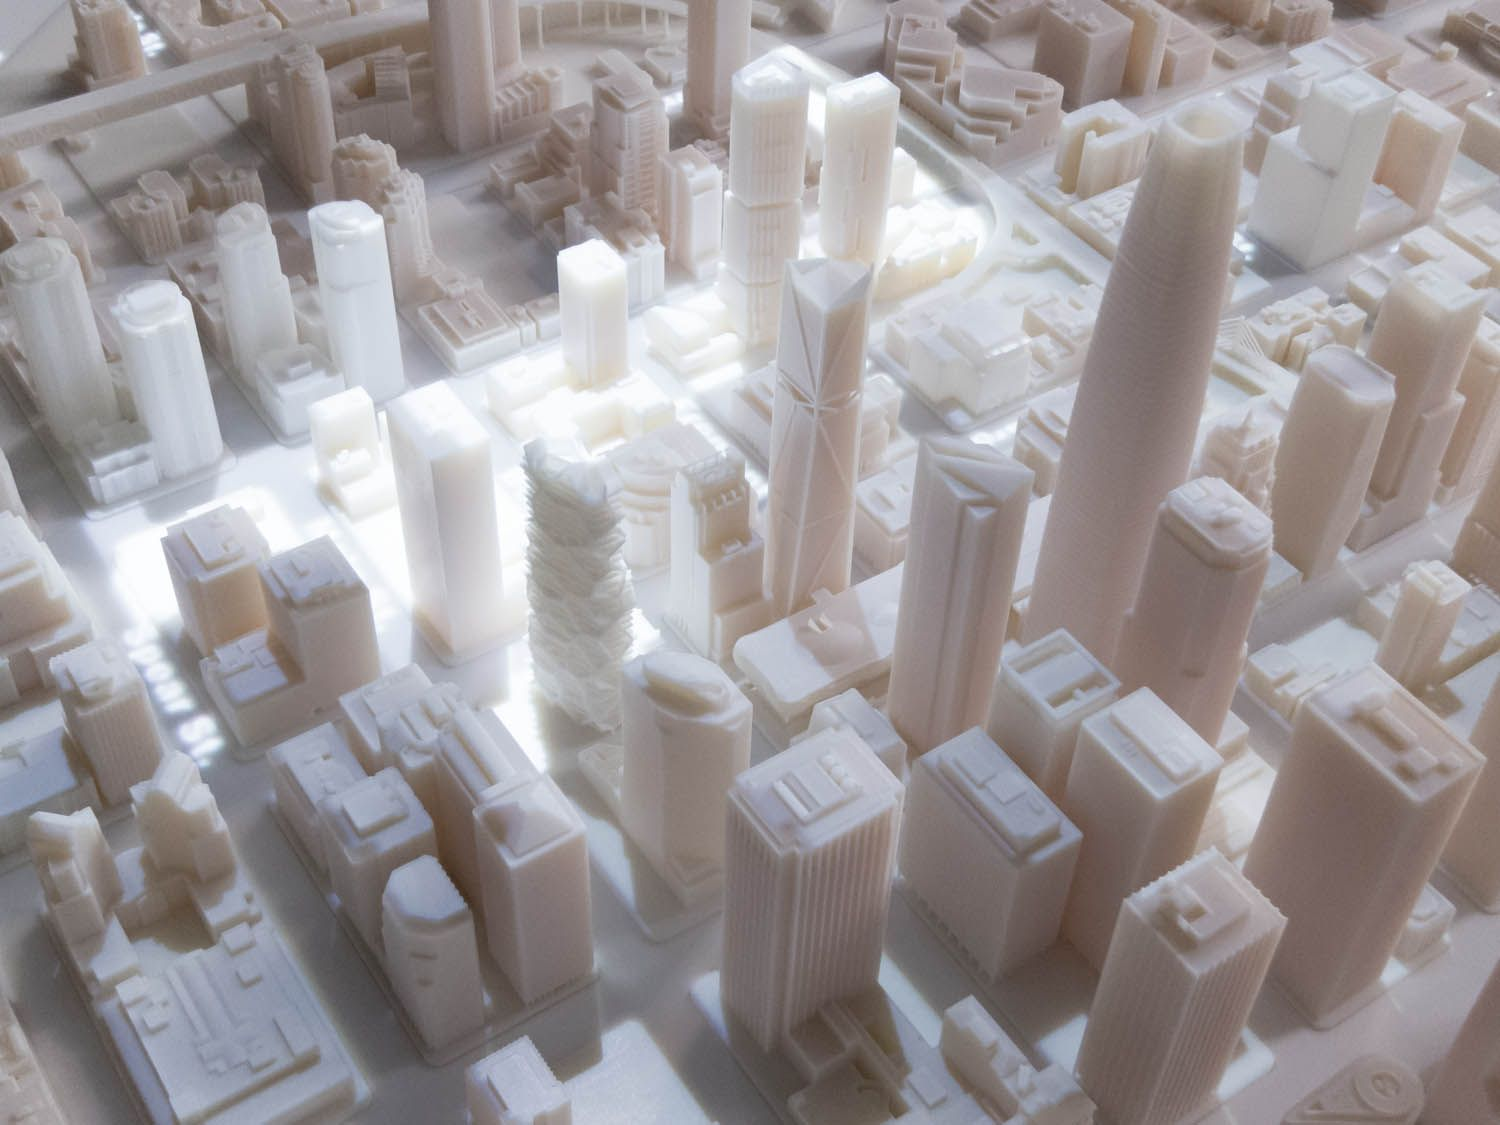 cgarchitect professional 3d architectural visualization usercgarchitect professional 3d architectural visualization user community steelblue unveils largest 3d printed interactive city model of san francisco